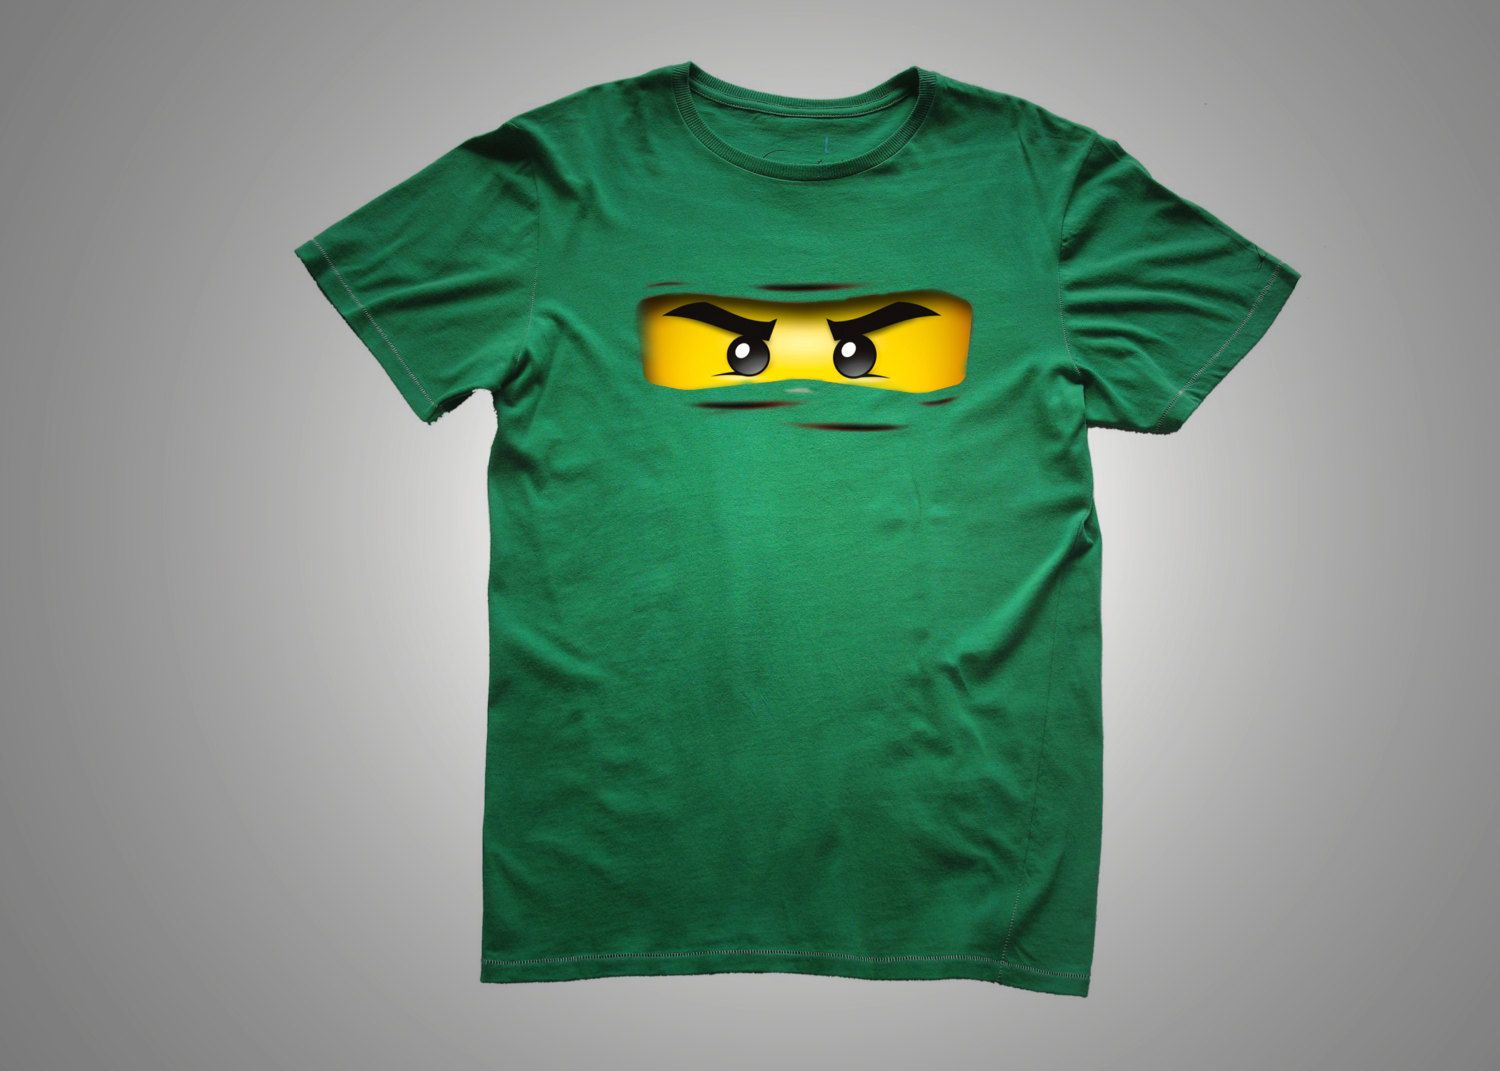 Ninjago Iron On Eyes Can Apply To Any Color Item Tee Shirt, Bag,